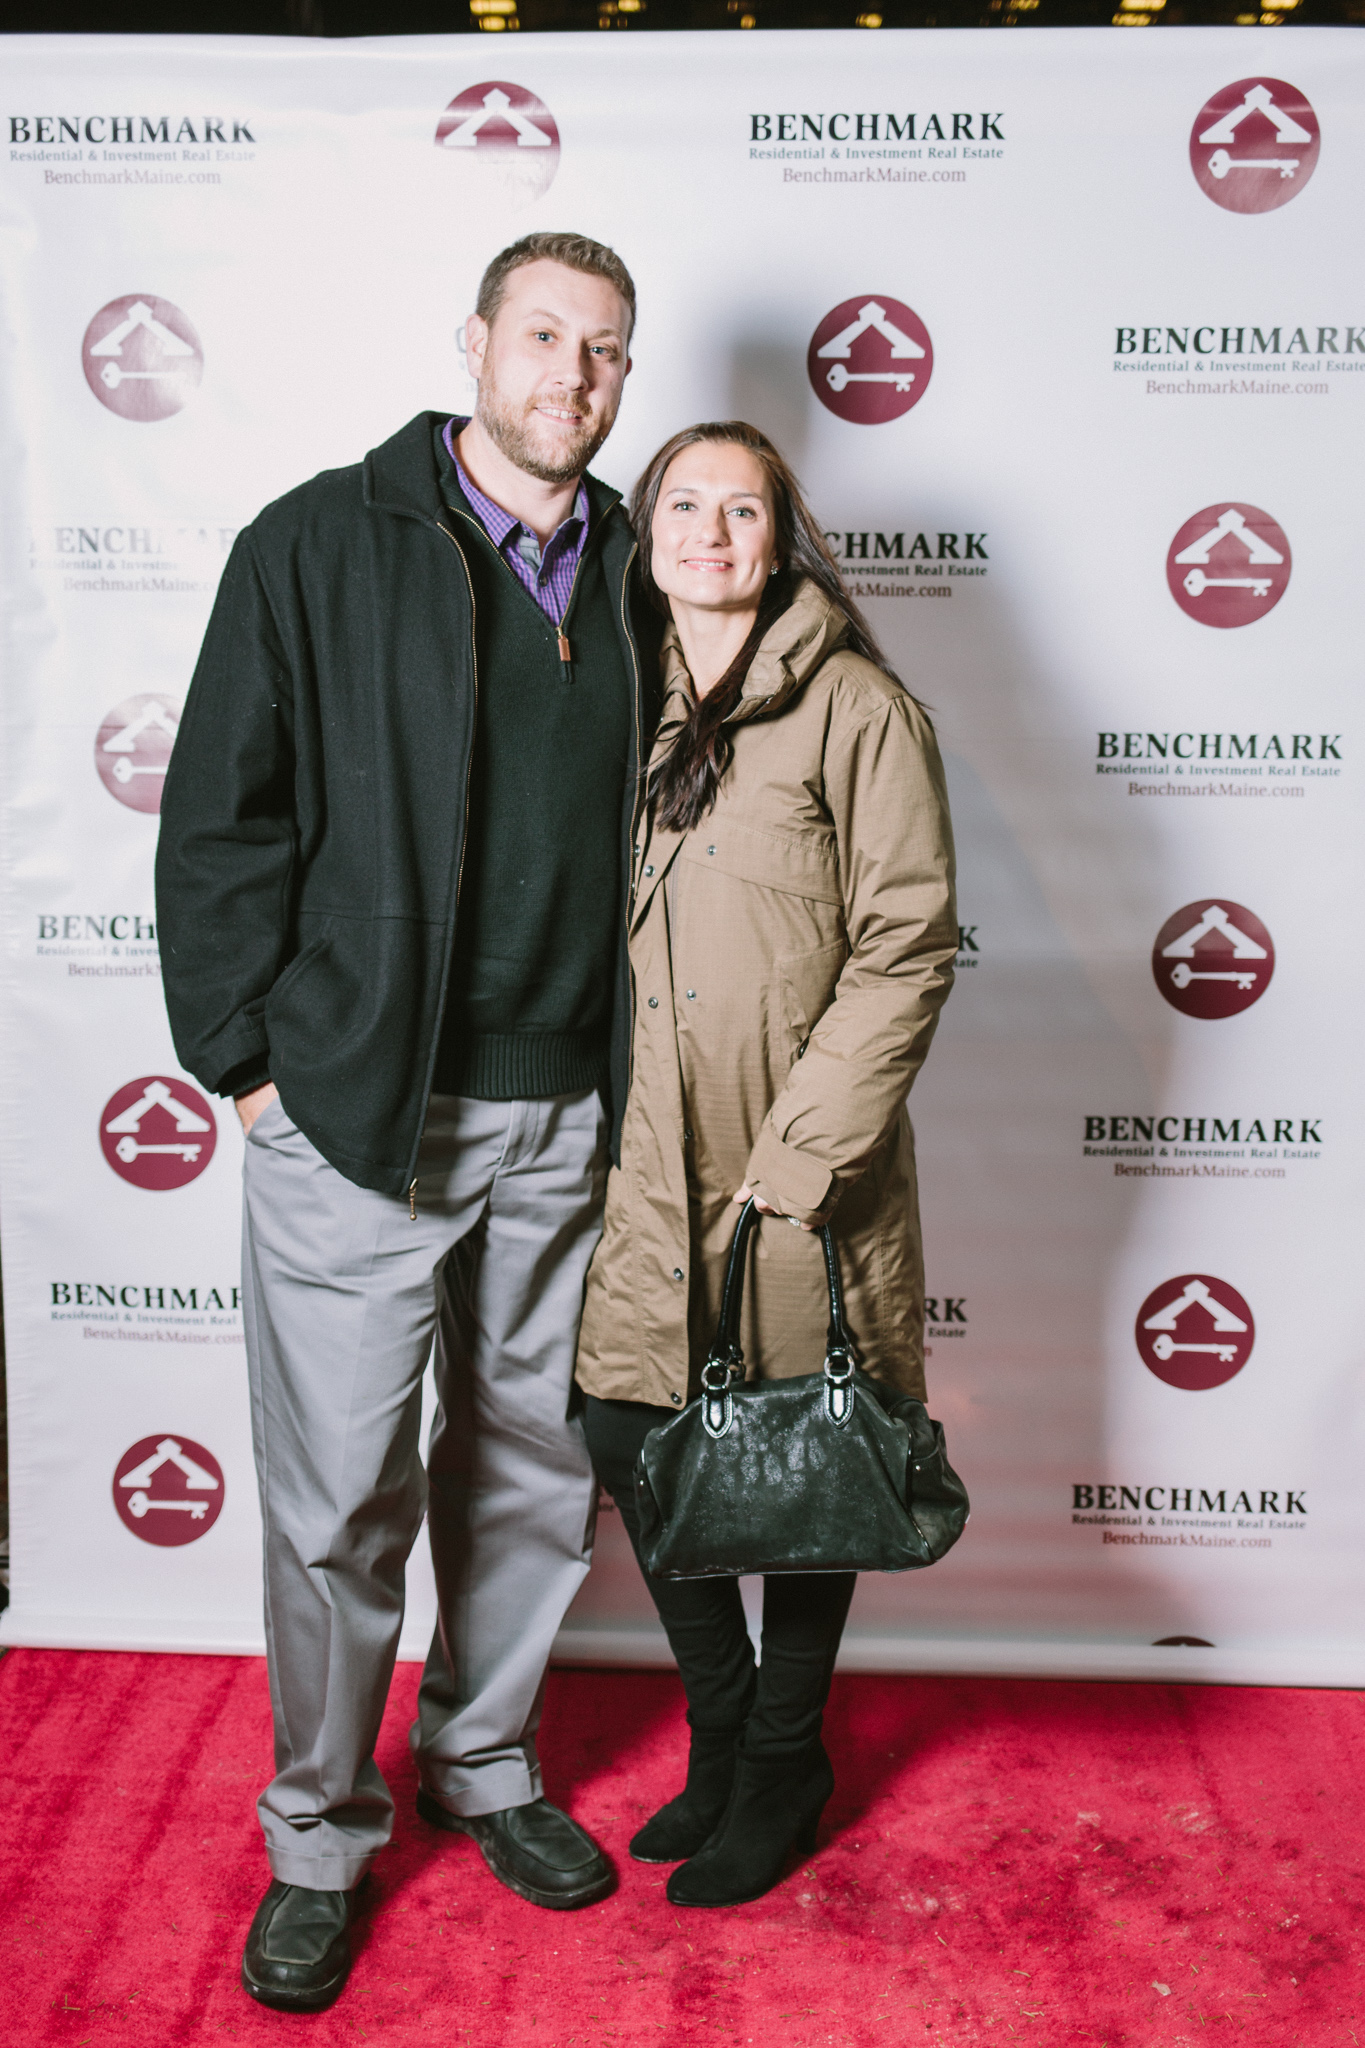 Benchmark_Holiday_Party_SR-036.jpg